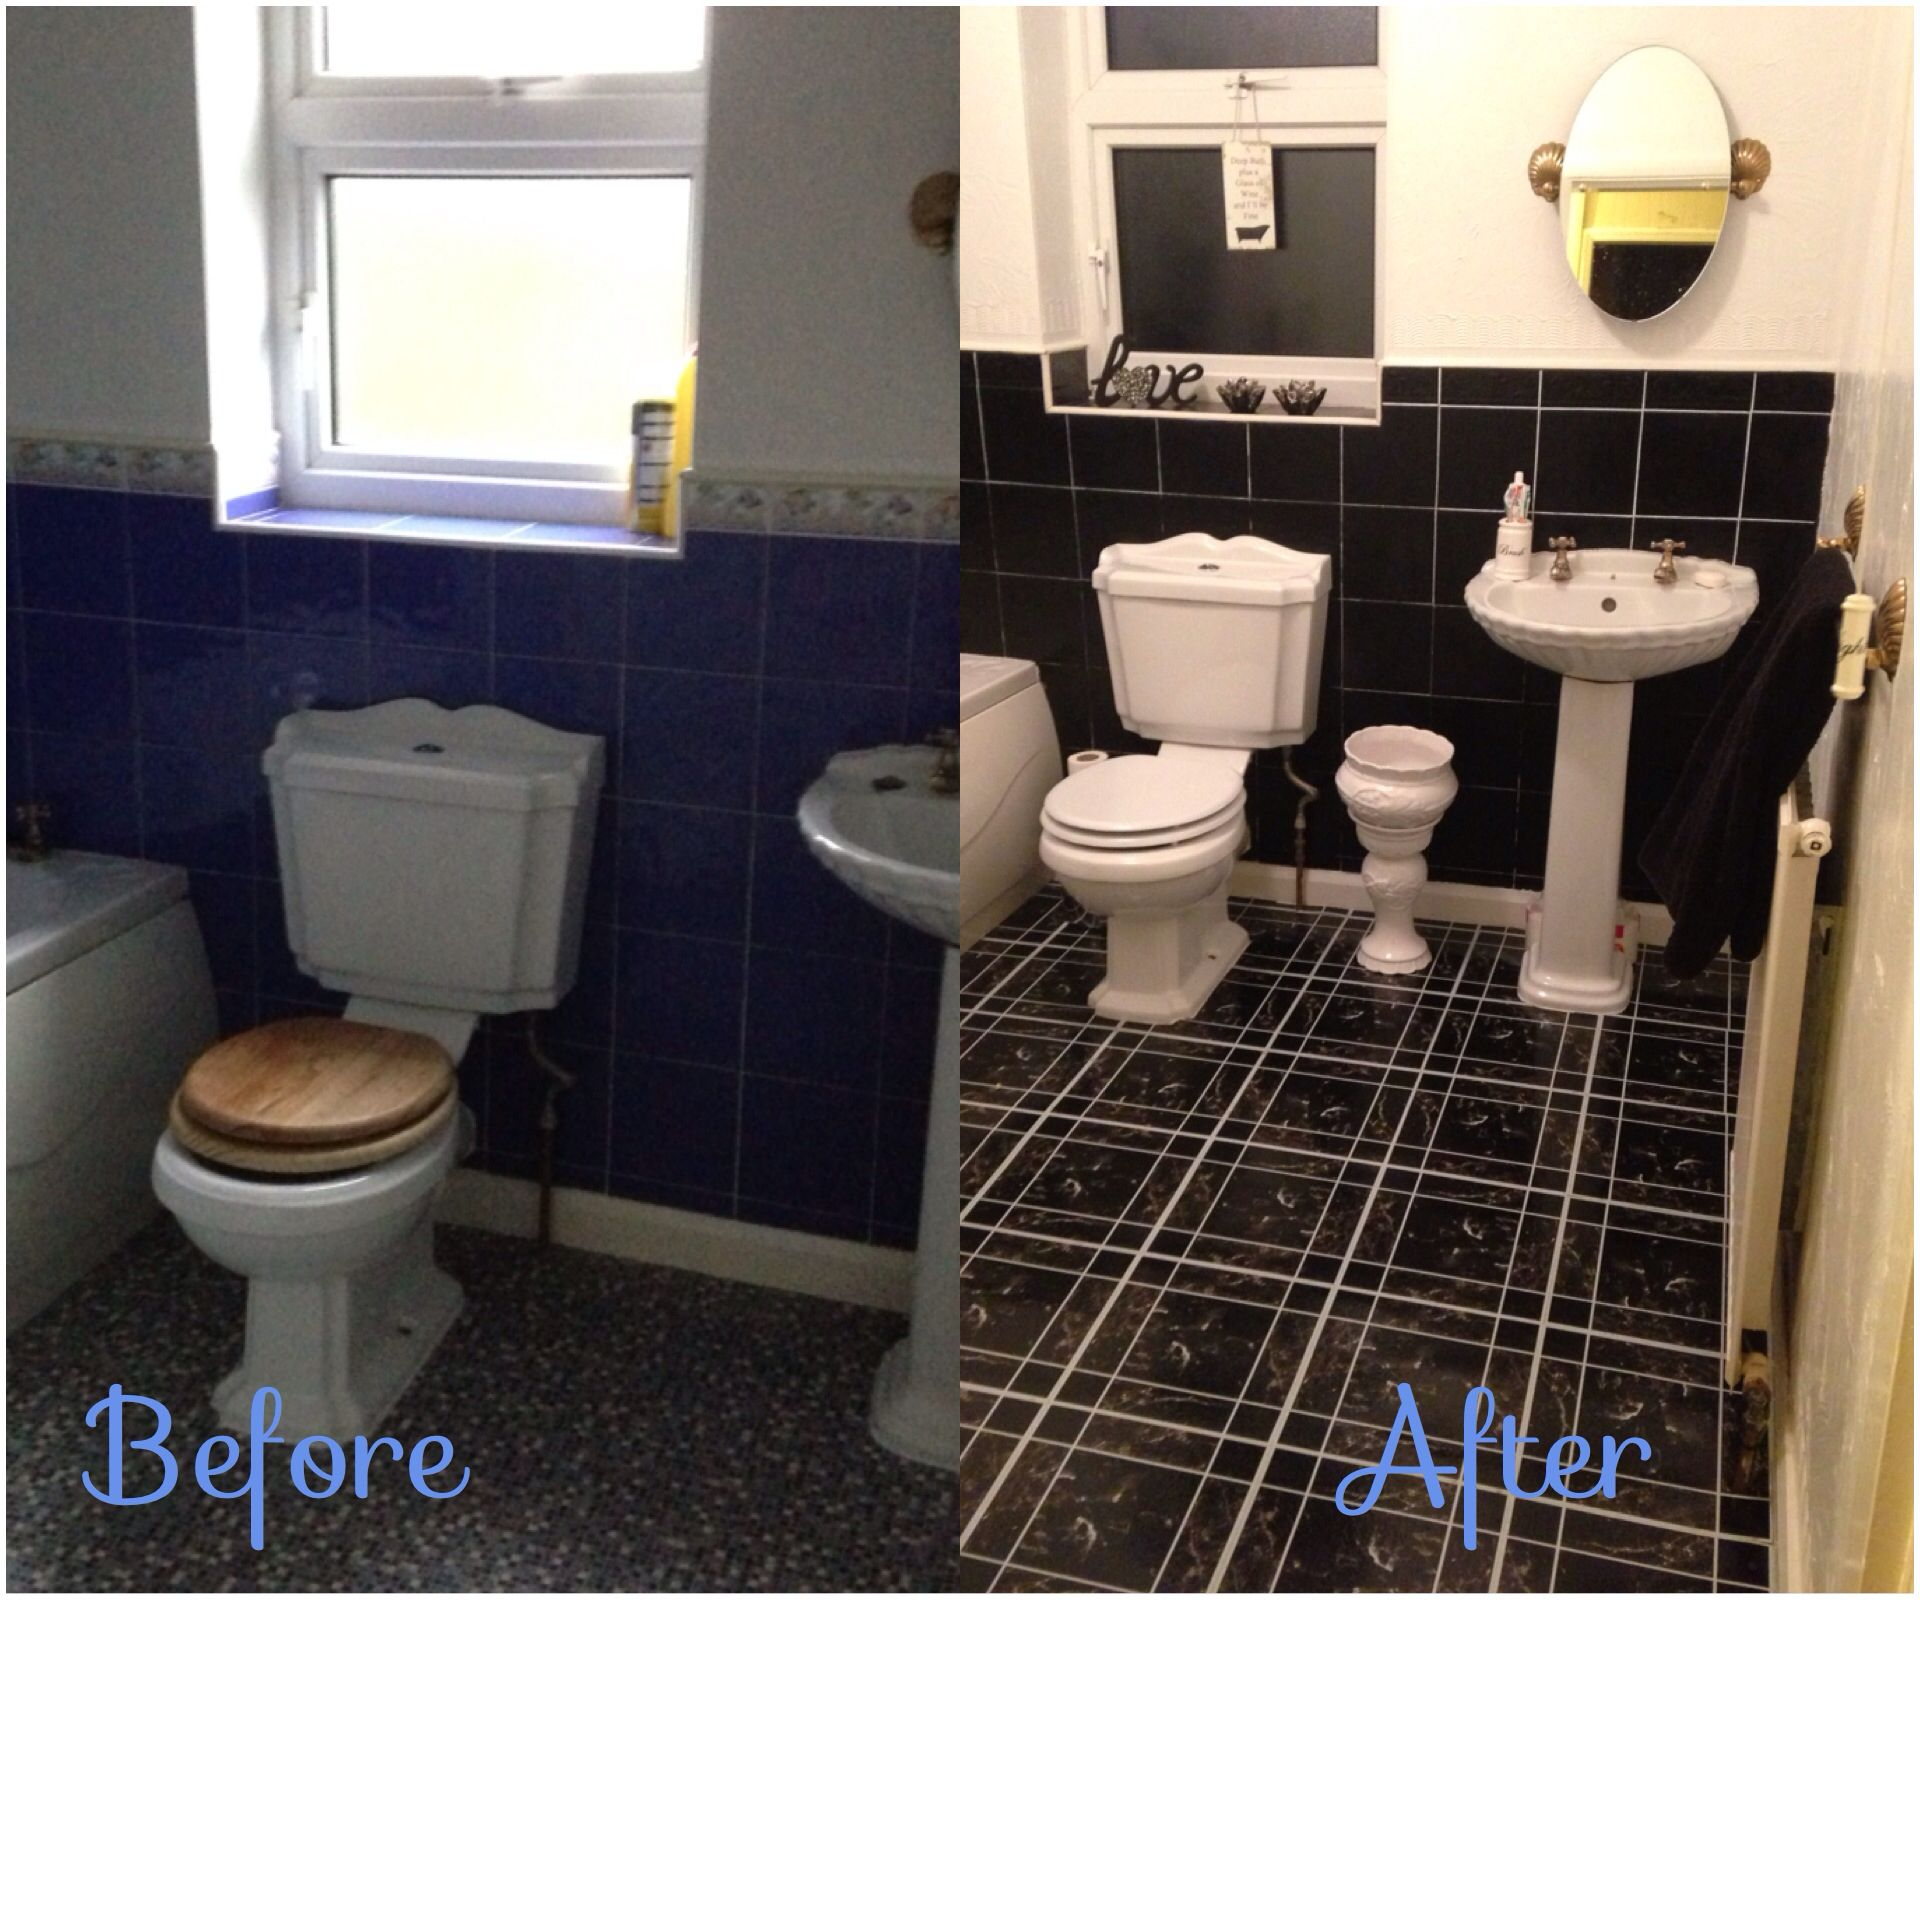 Using Black Tile Paint And Stick On Tiles From Pound Land. In Expensive Way  To Update Your Bathroom In A Rented House. Part 49